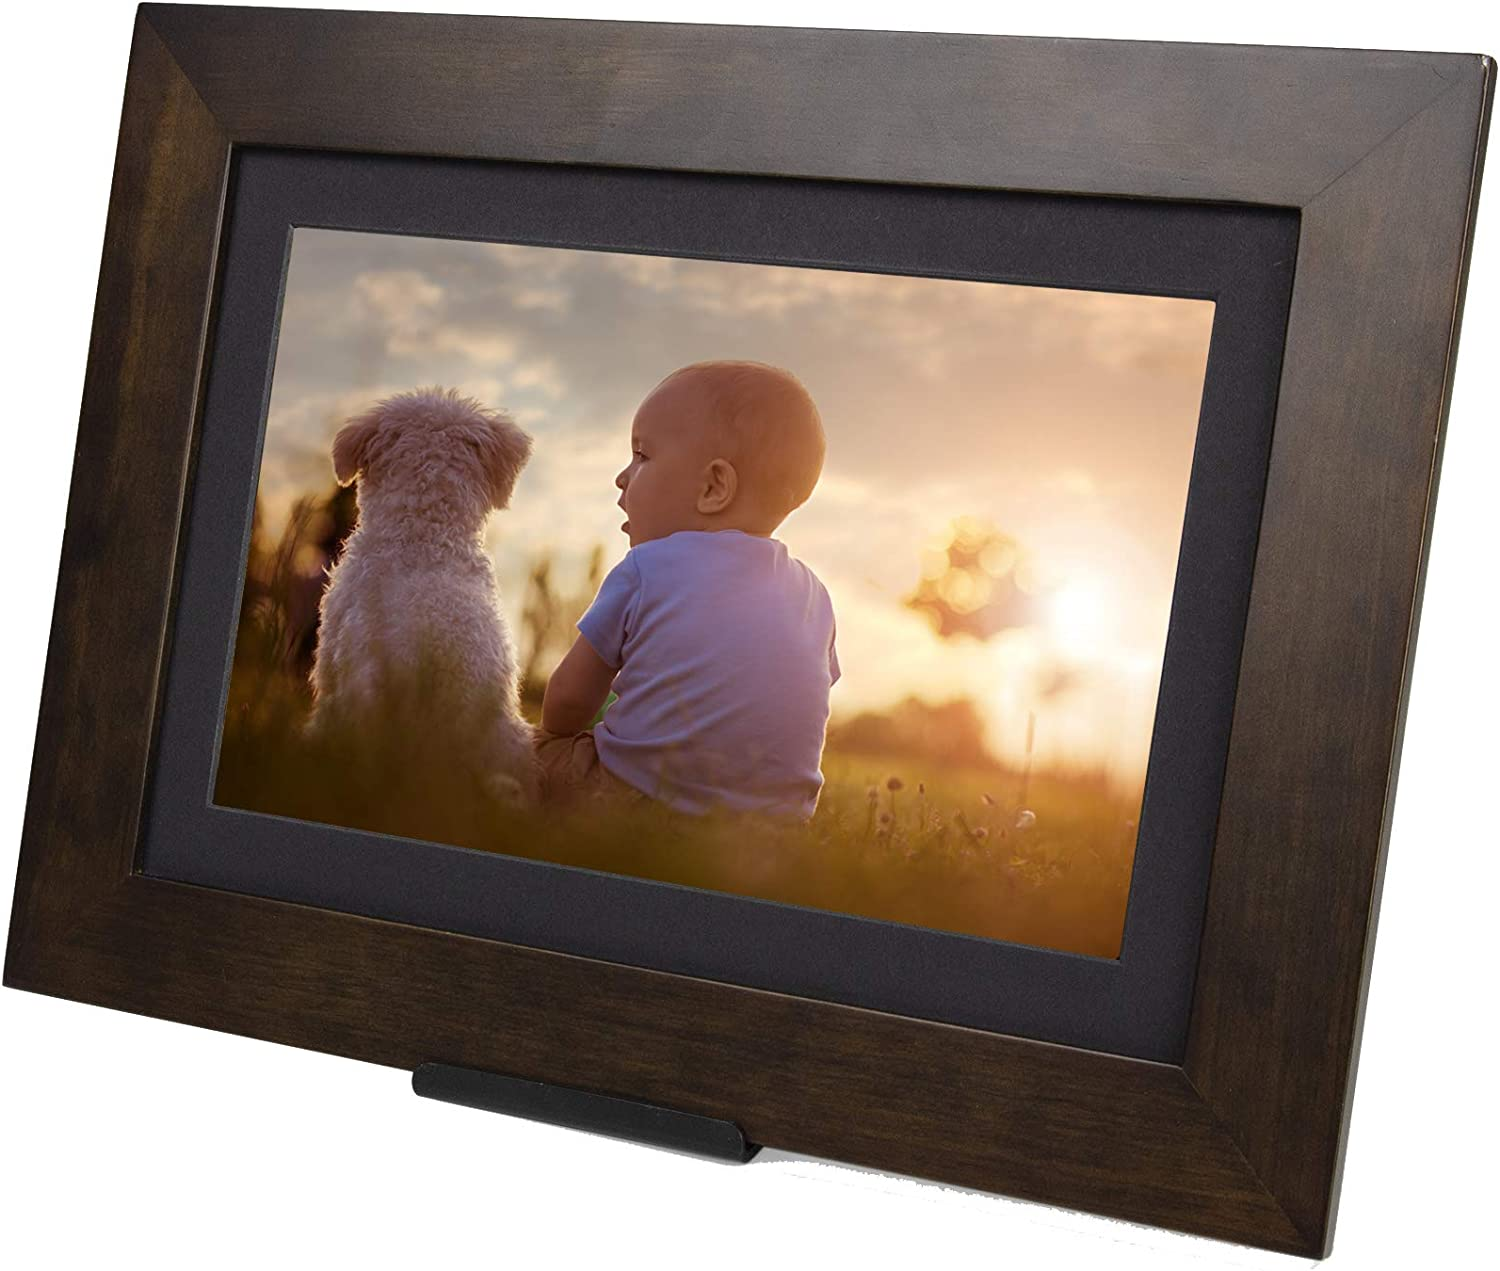 8 GB Android 10.1, Espresso Send Pics from Phone to Frame 1080P Holds Over 5,000 Photos iOS HD PhotoShare Friends and Family Smart Frame Digital Photo Frame WiFi 1-5 Day Shipping